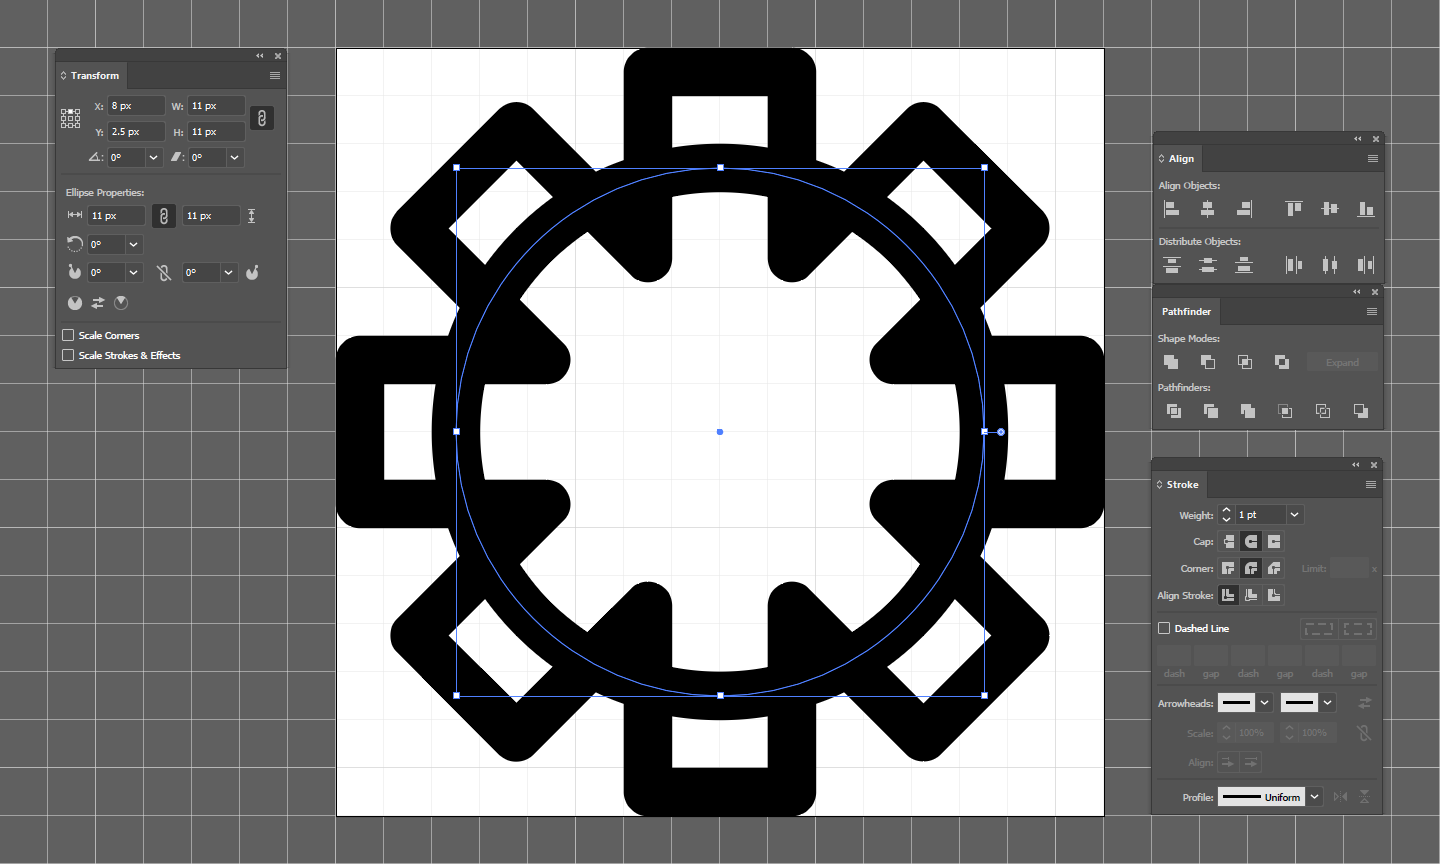 Create Circle and align it to center